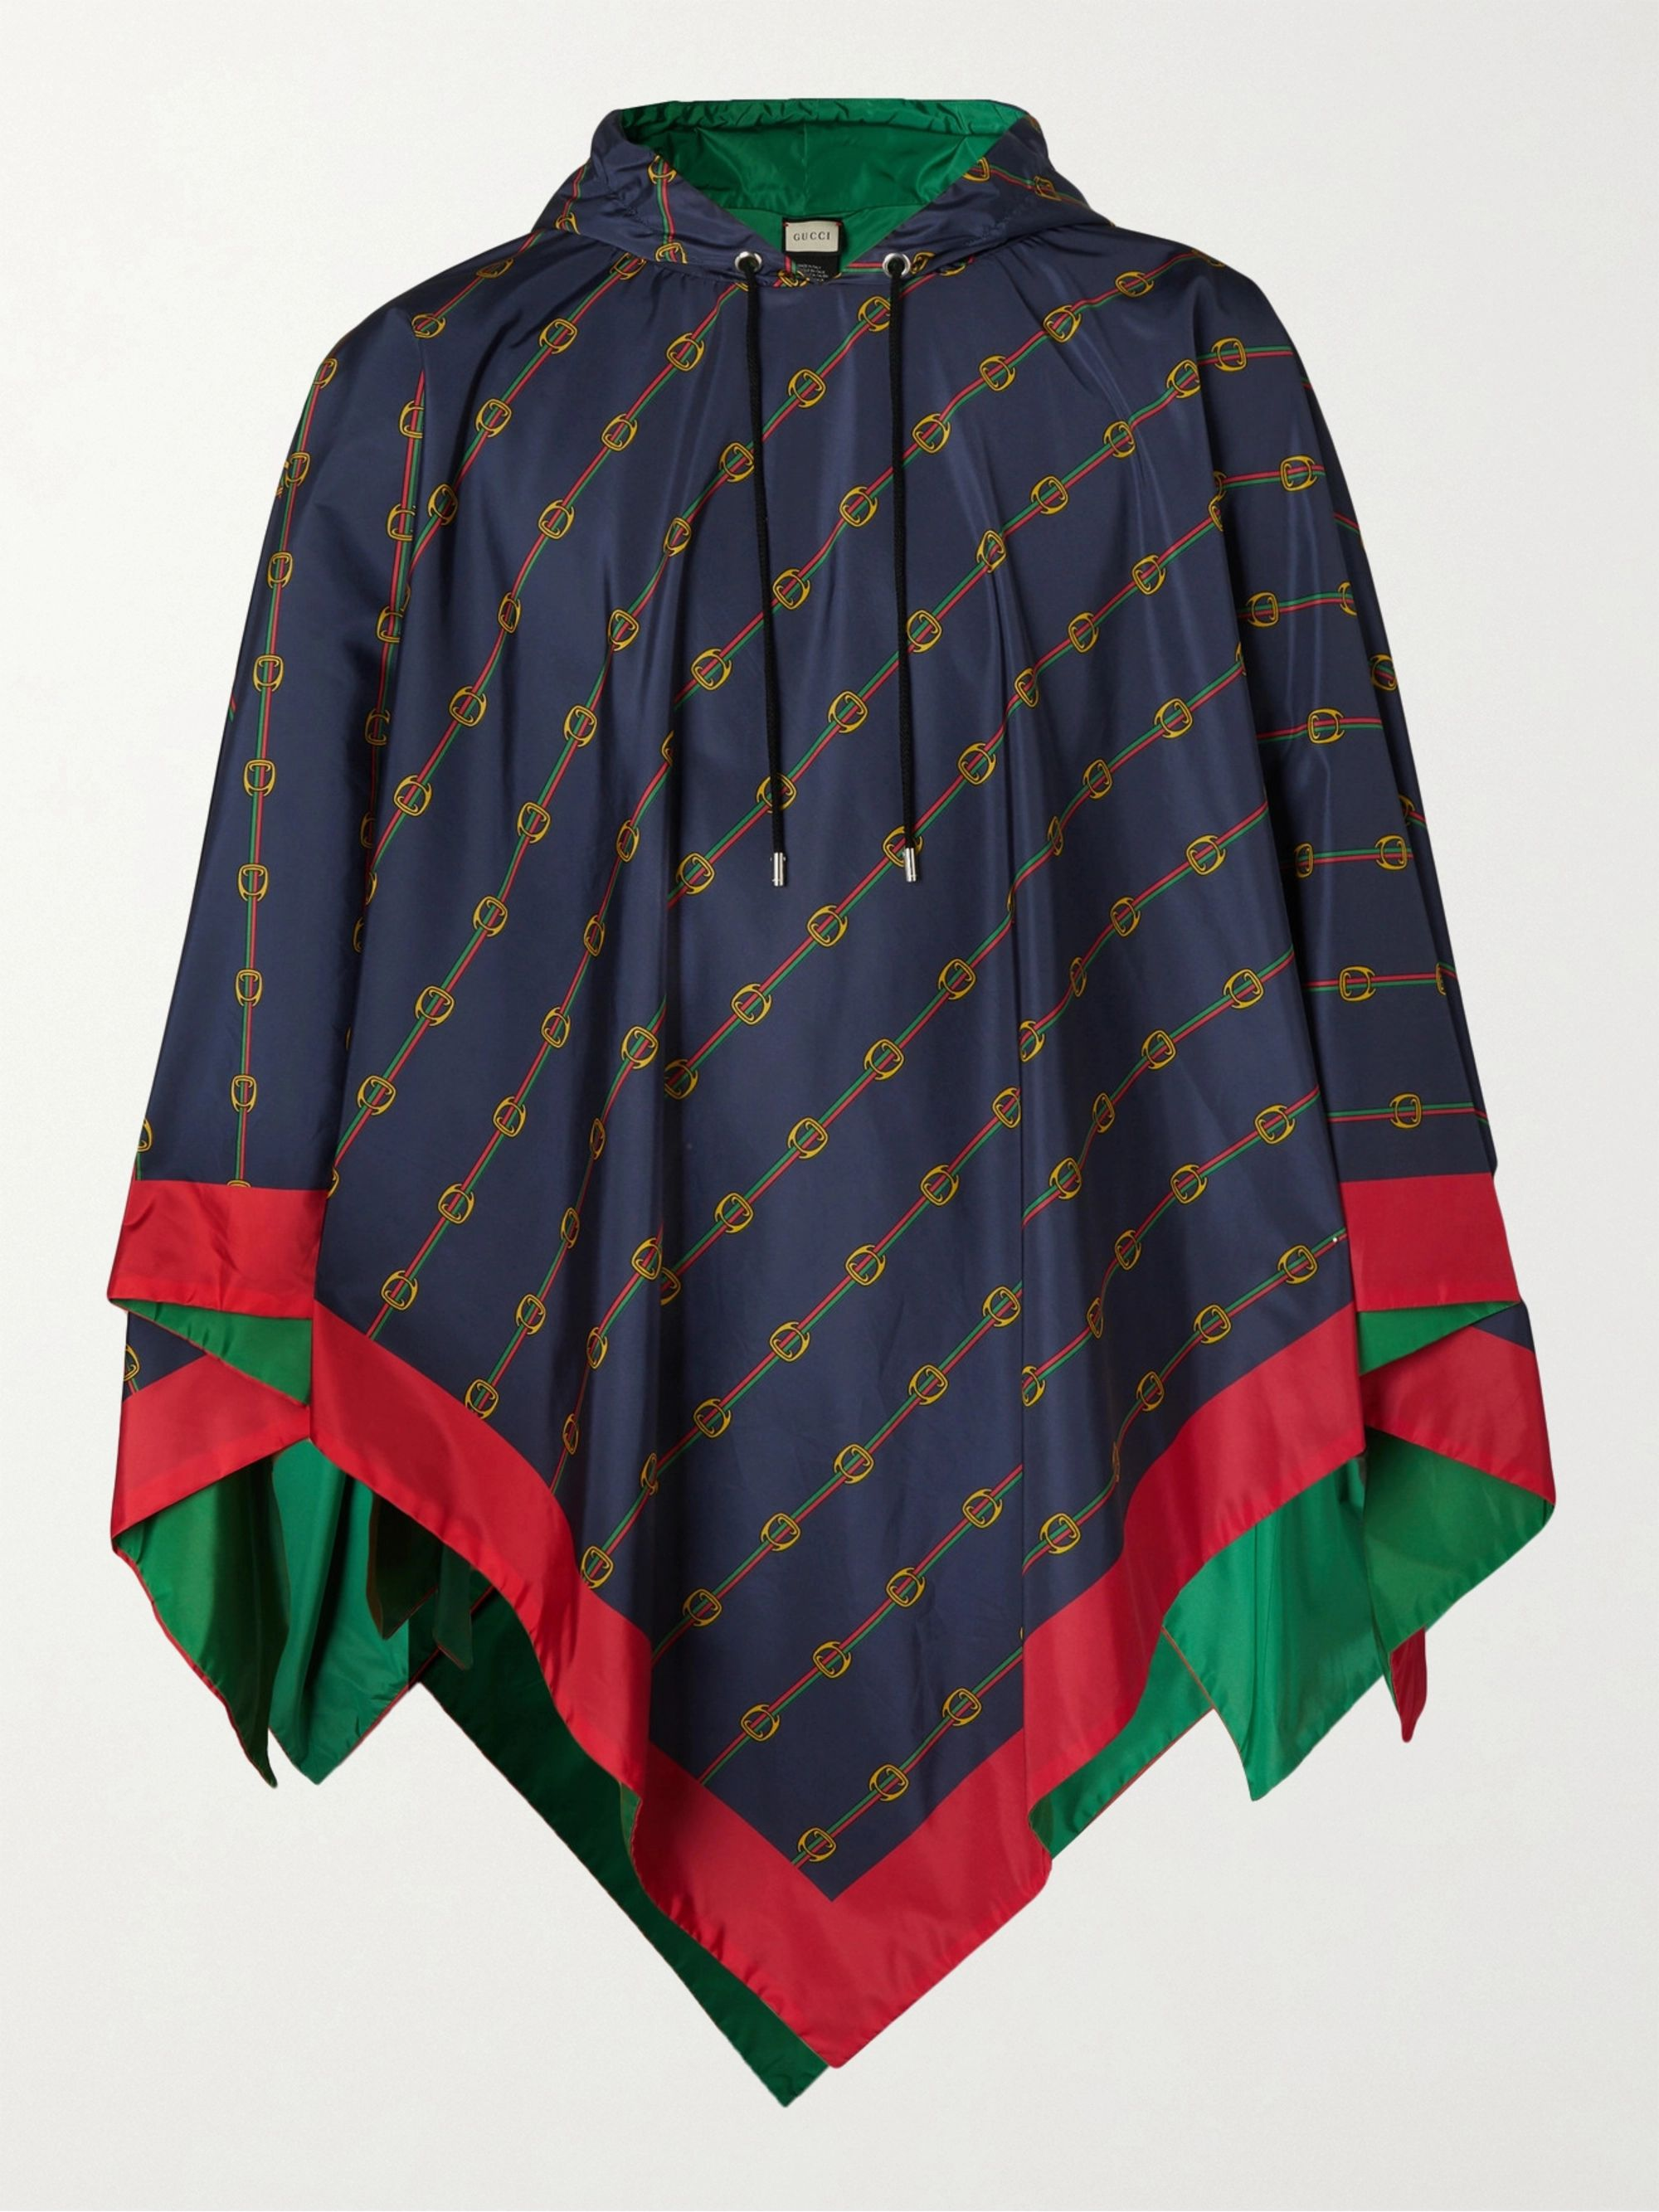 Gucci Reversible Logo-Print Nylon Hooded Poncho